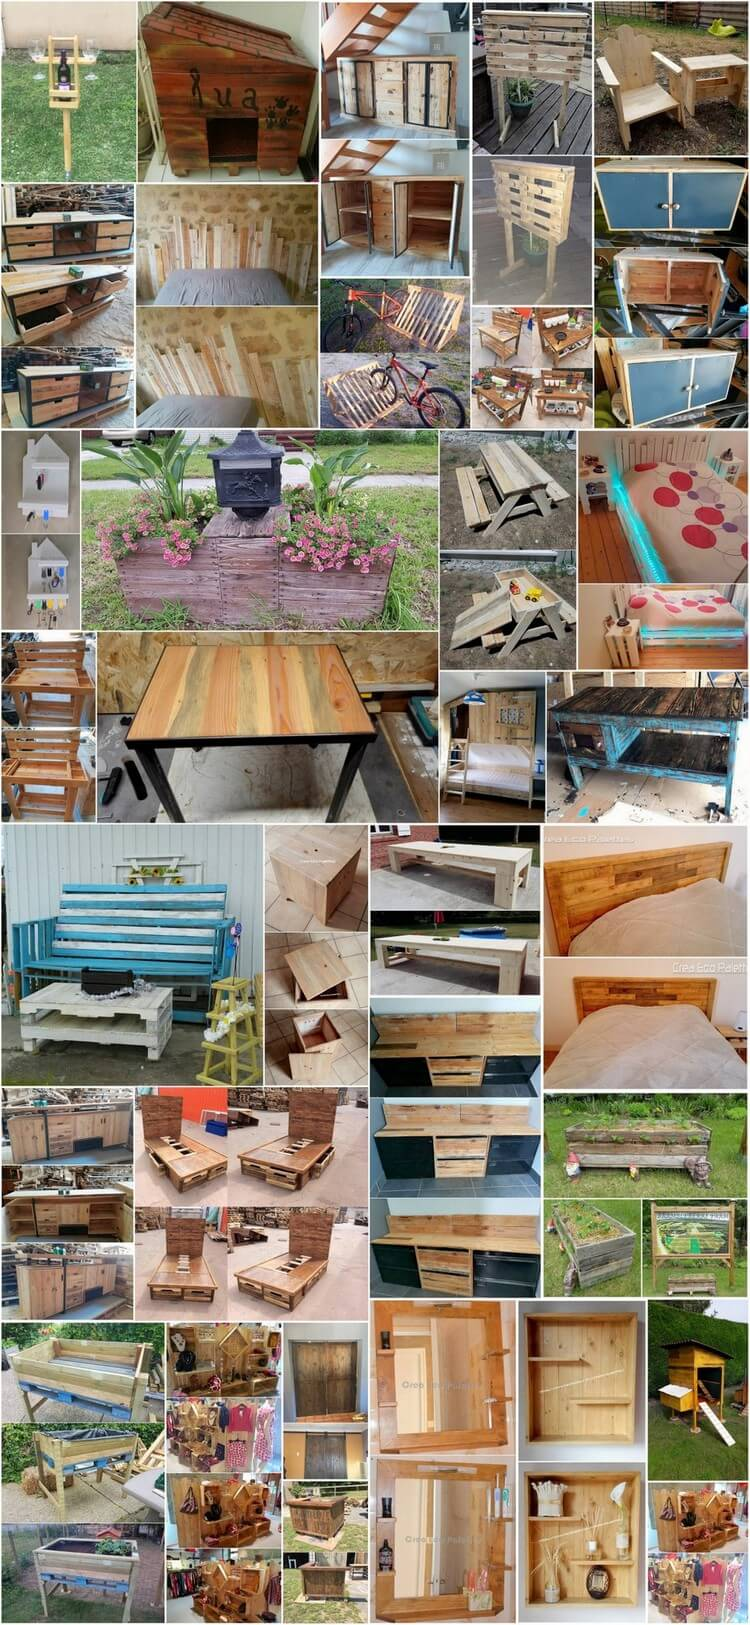 Inspired DIY Ideas with Used Shipping Pallets